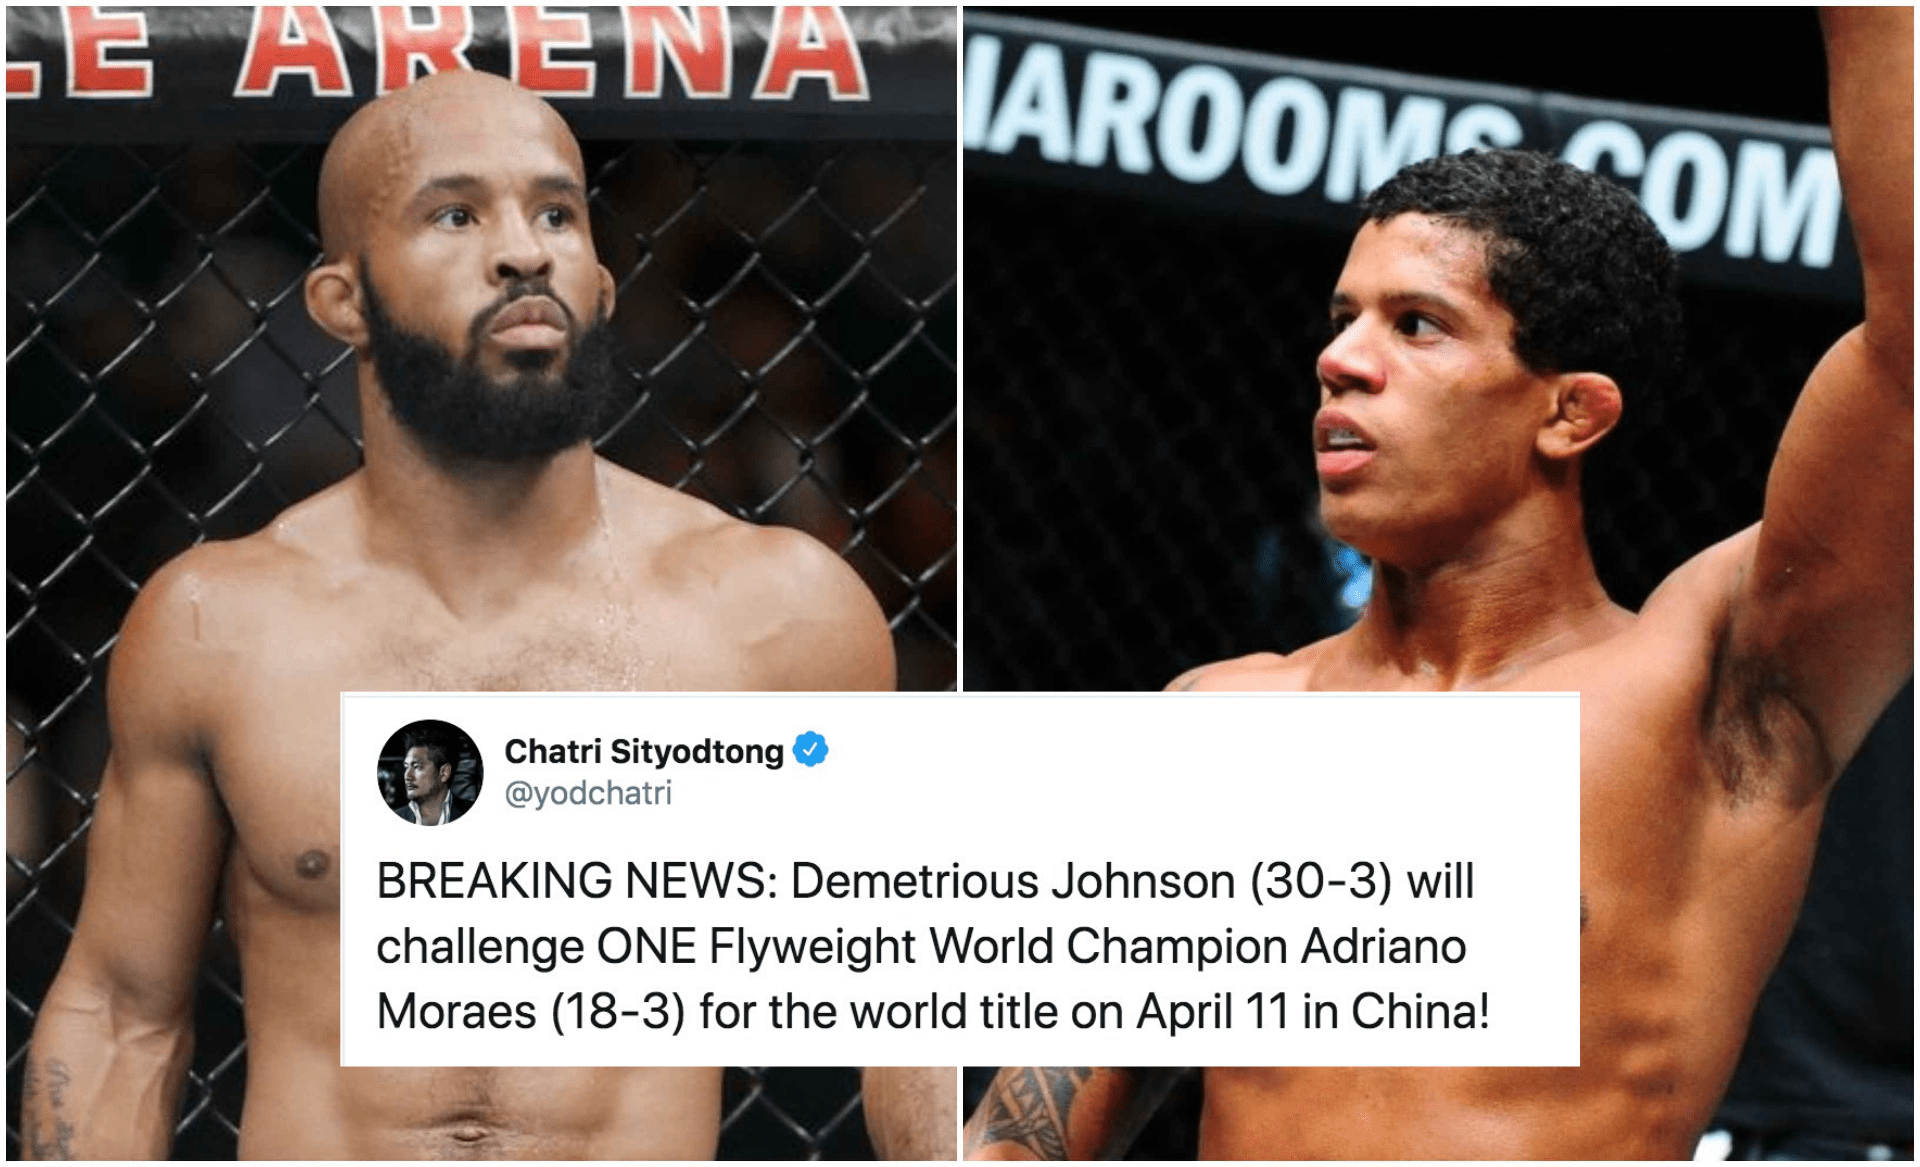 Demetrious Johnson will fight for the ONE Championship belt in April 2020 - Demetrious